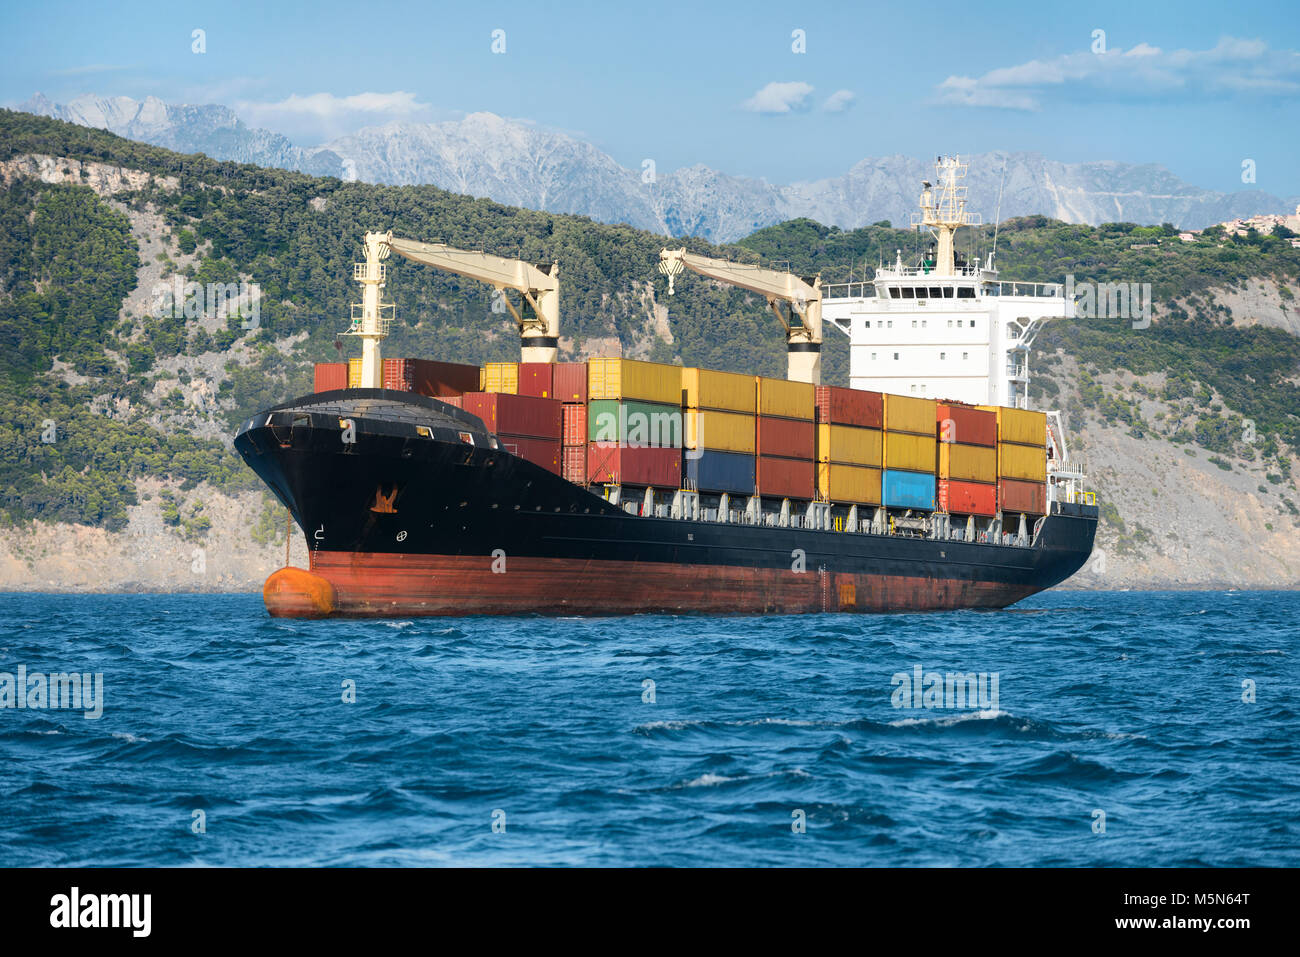 Logistics and freight transportation of international container Cargo ship in the ocean. Shipping concept - Stock Image